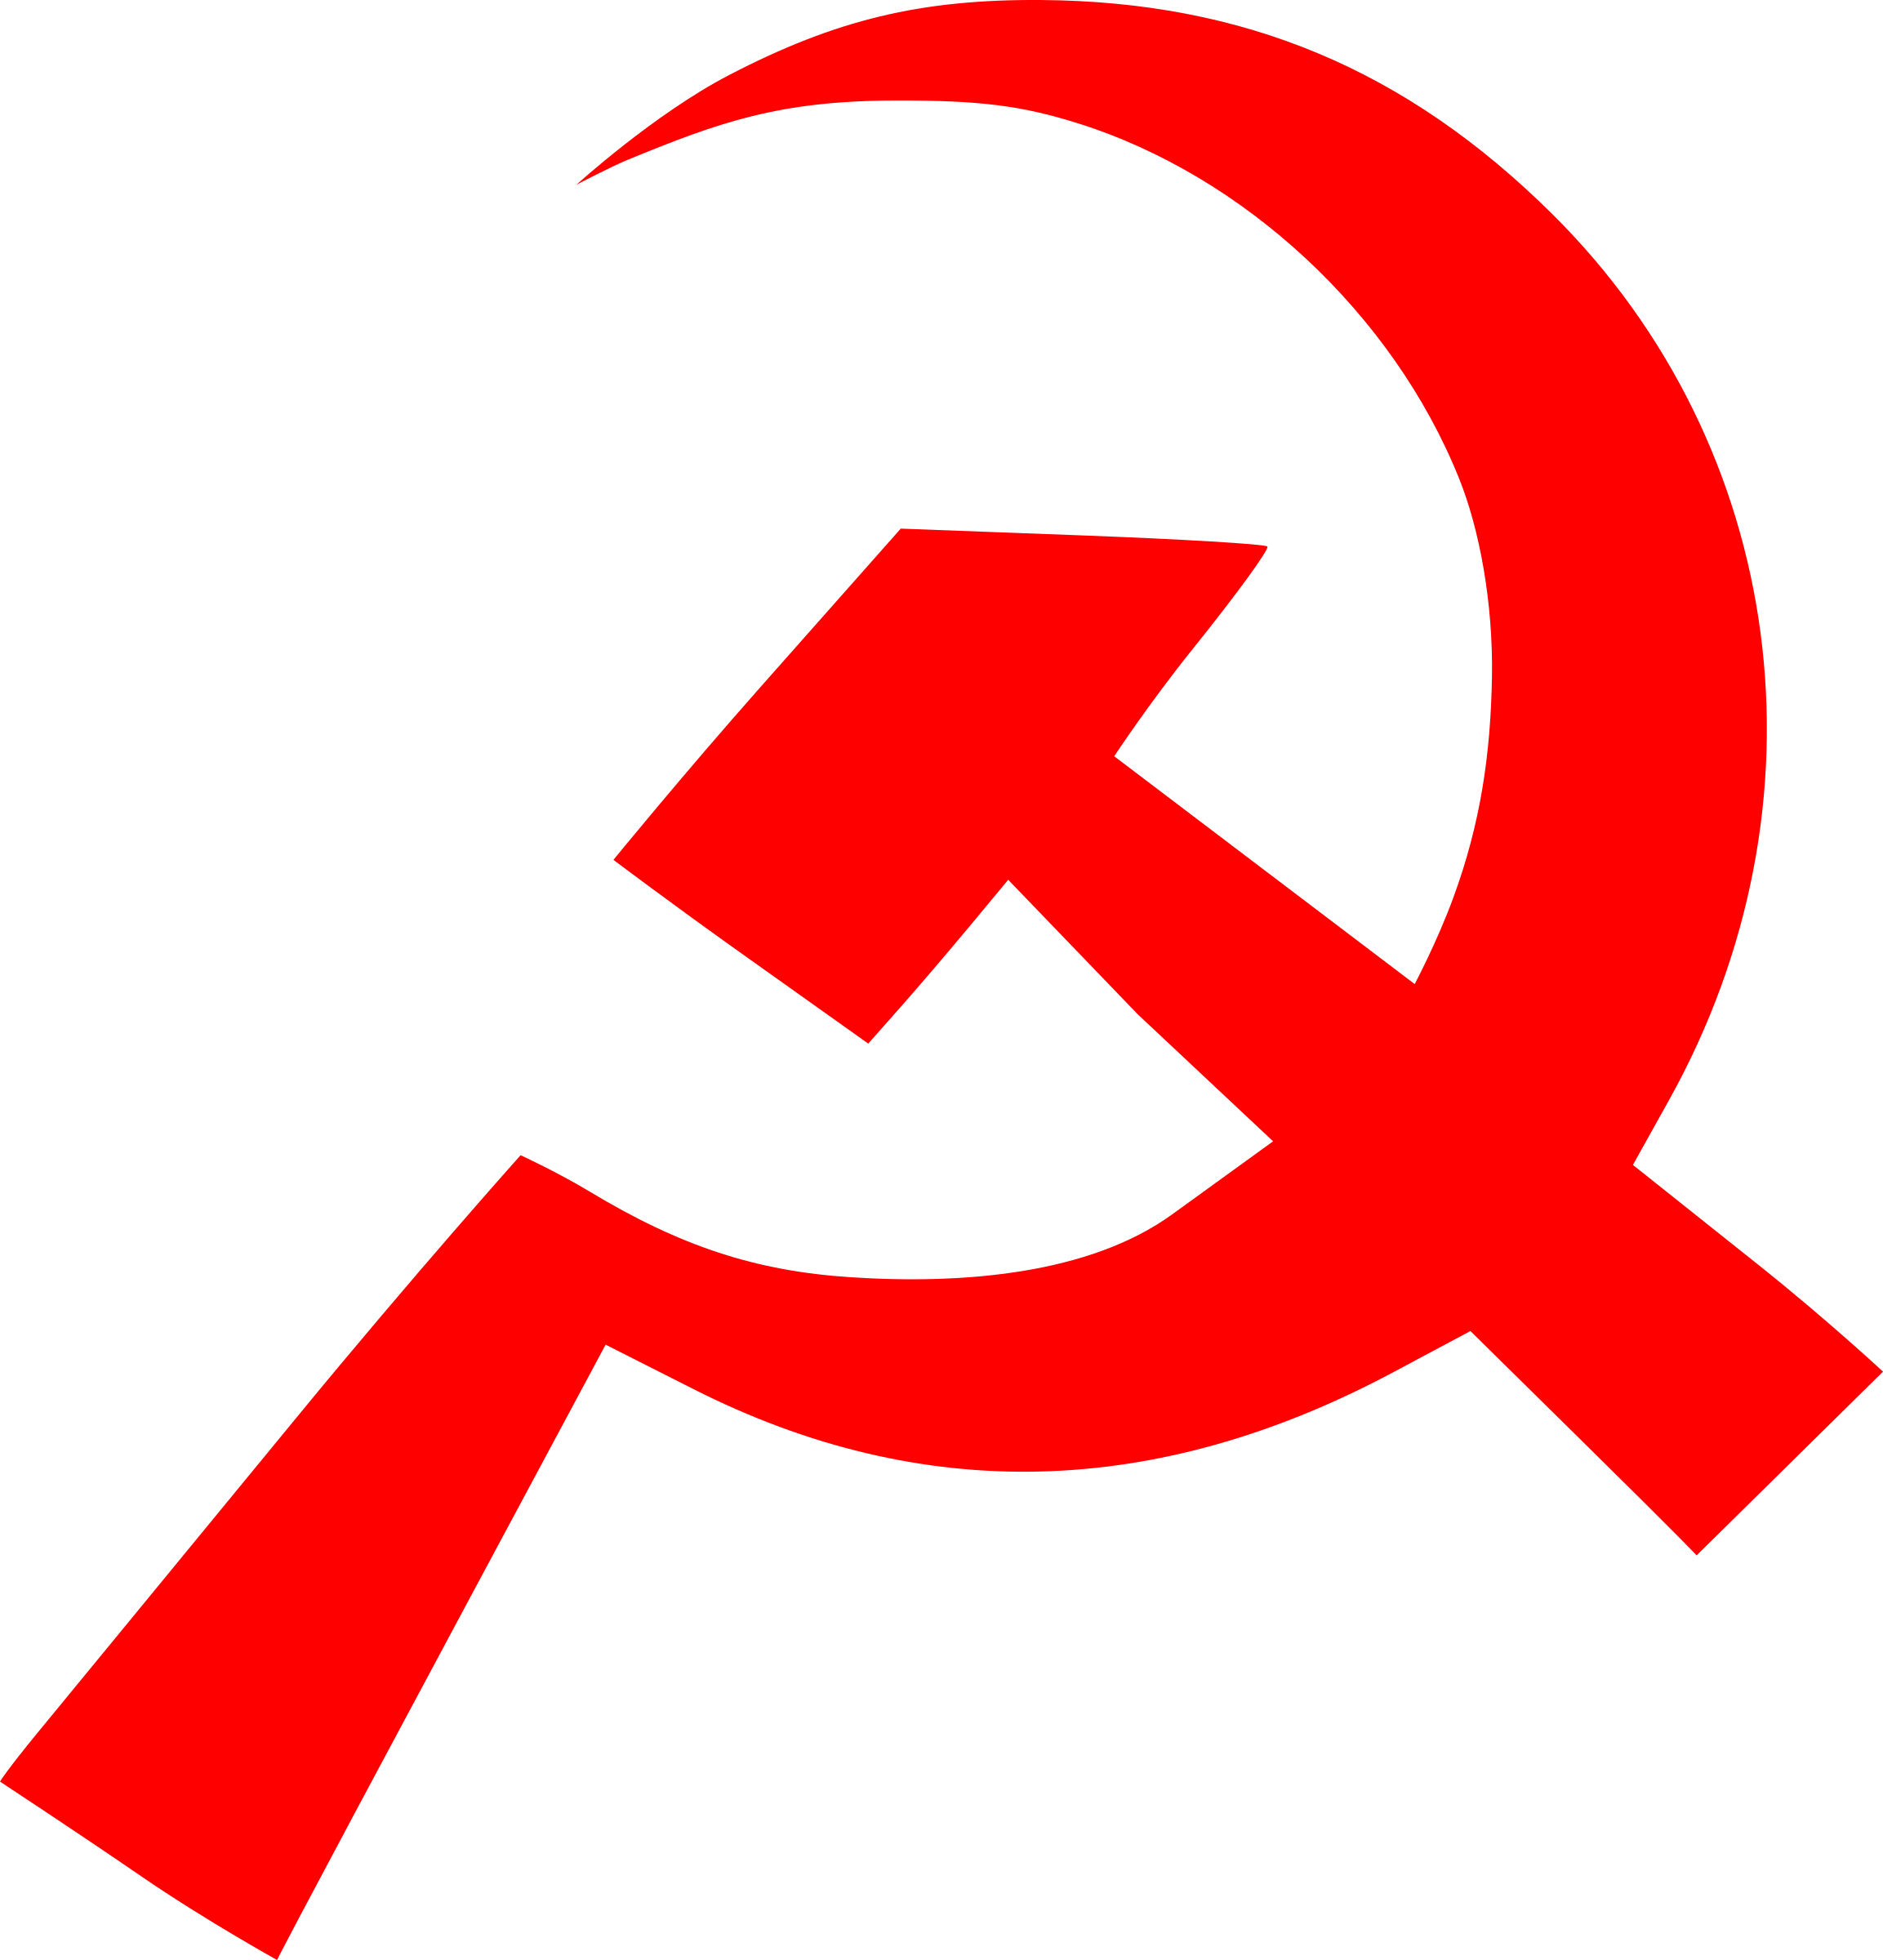 hammer and sickle by worker